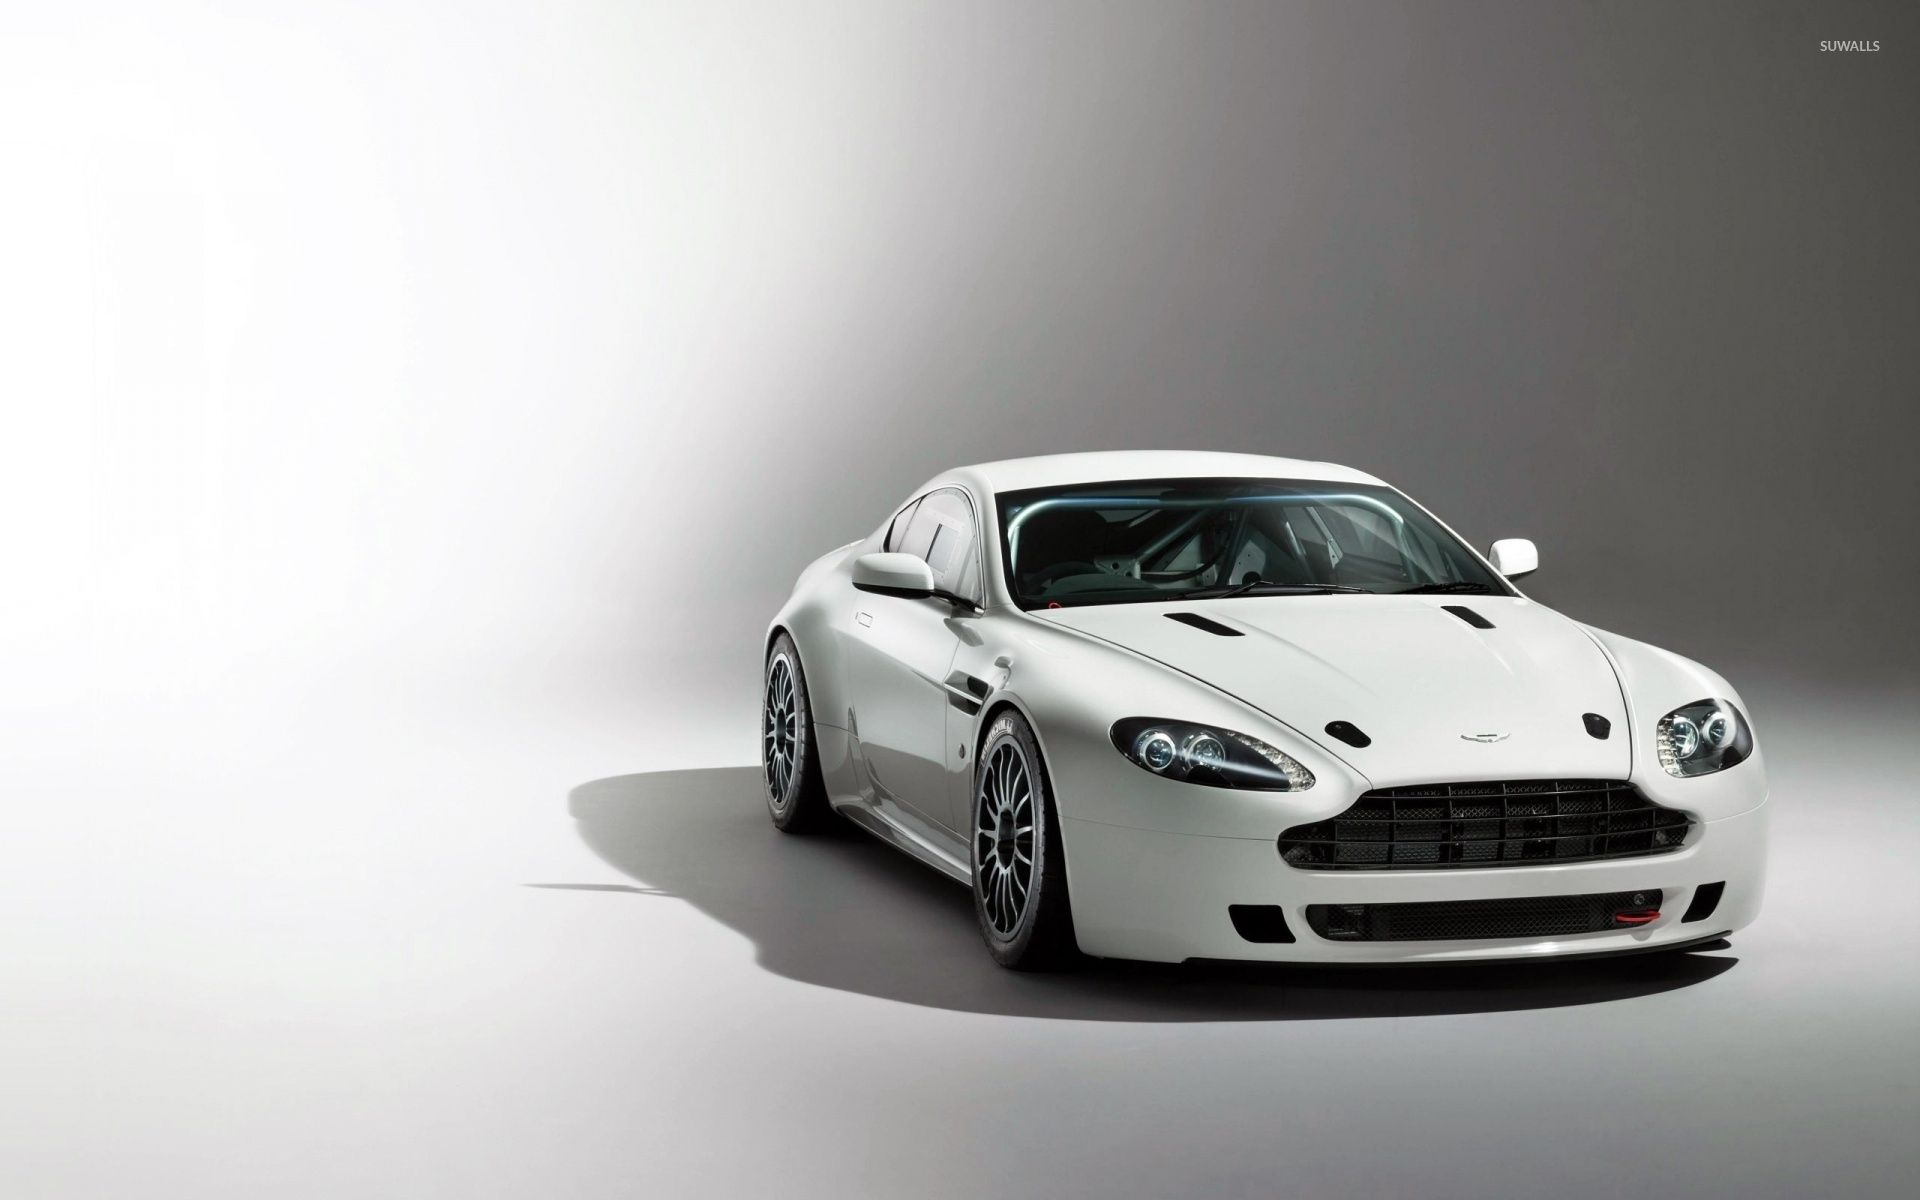 Aston Martin V8 Vantage [4] wallpapers